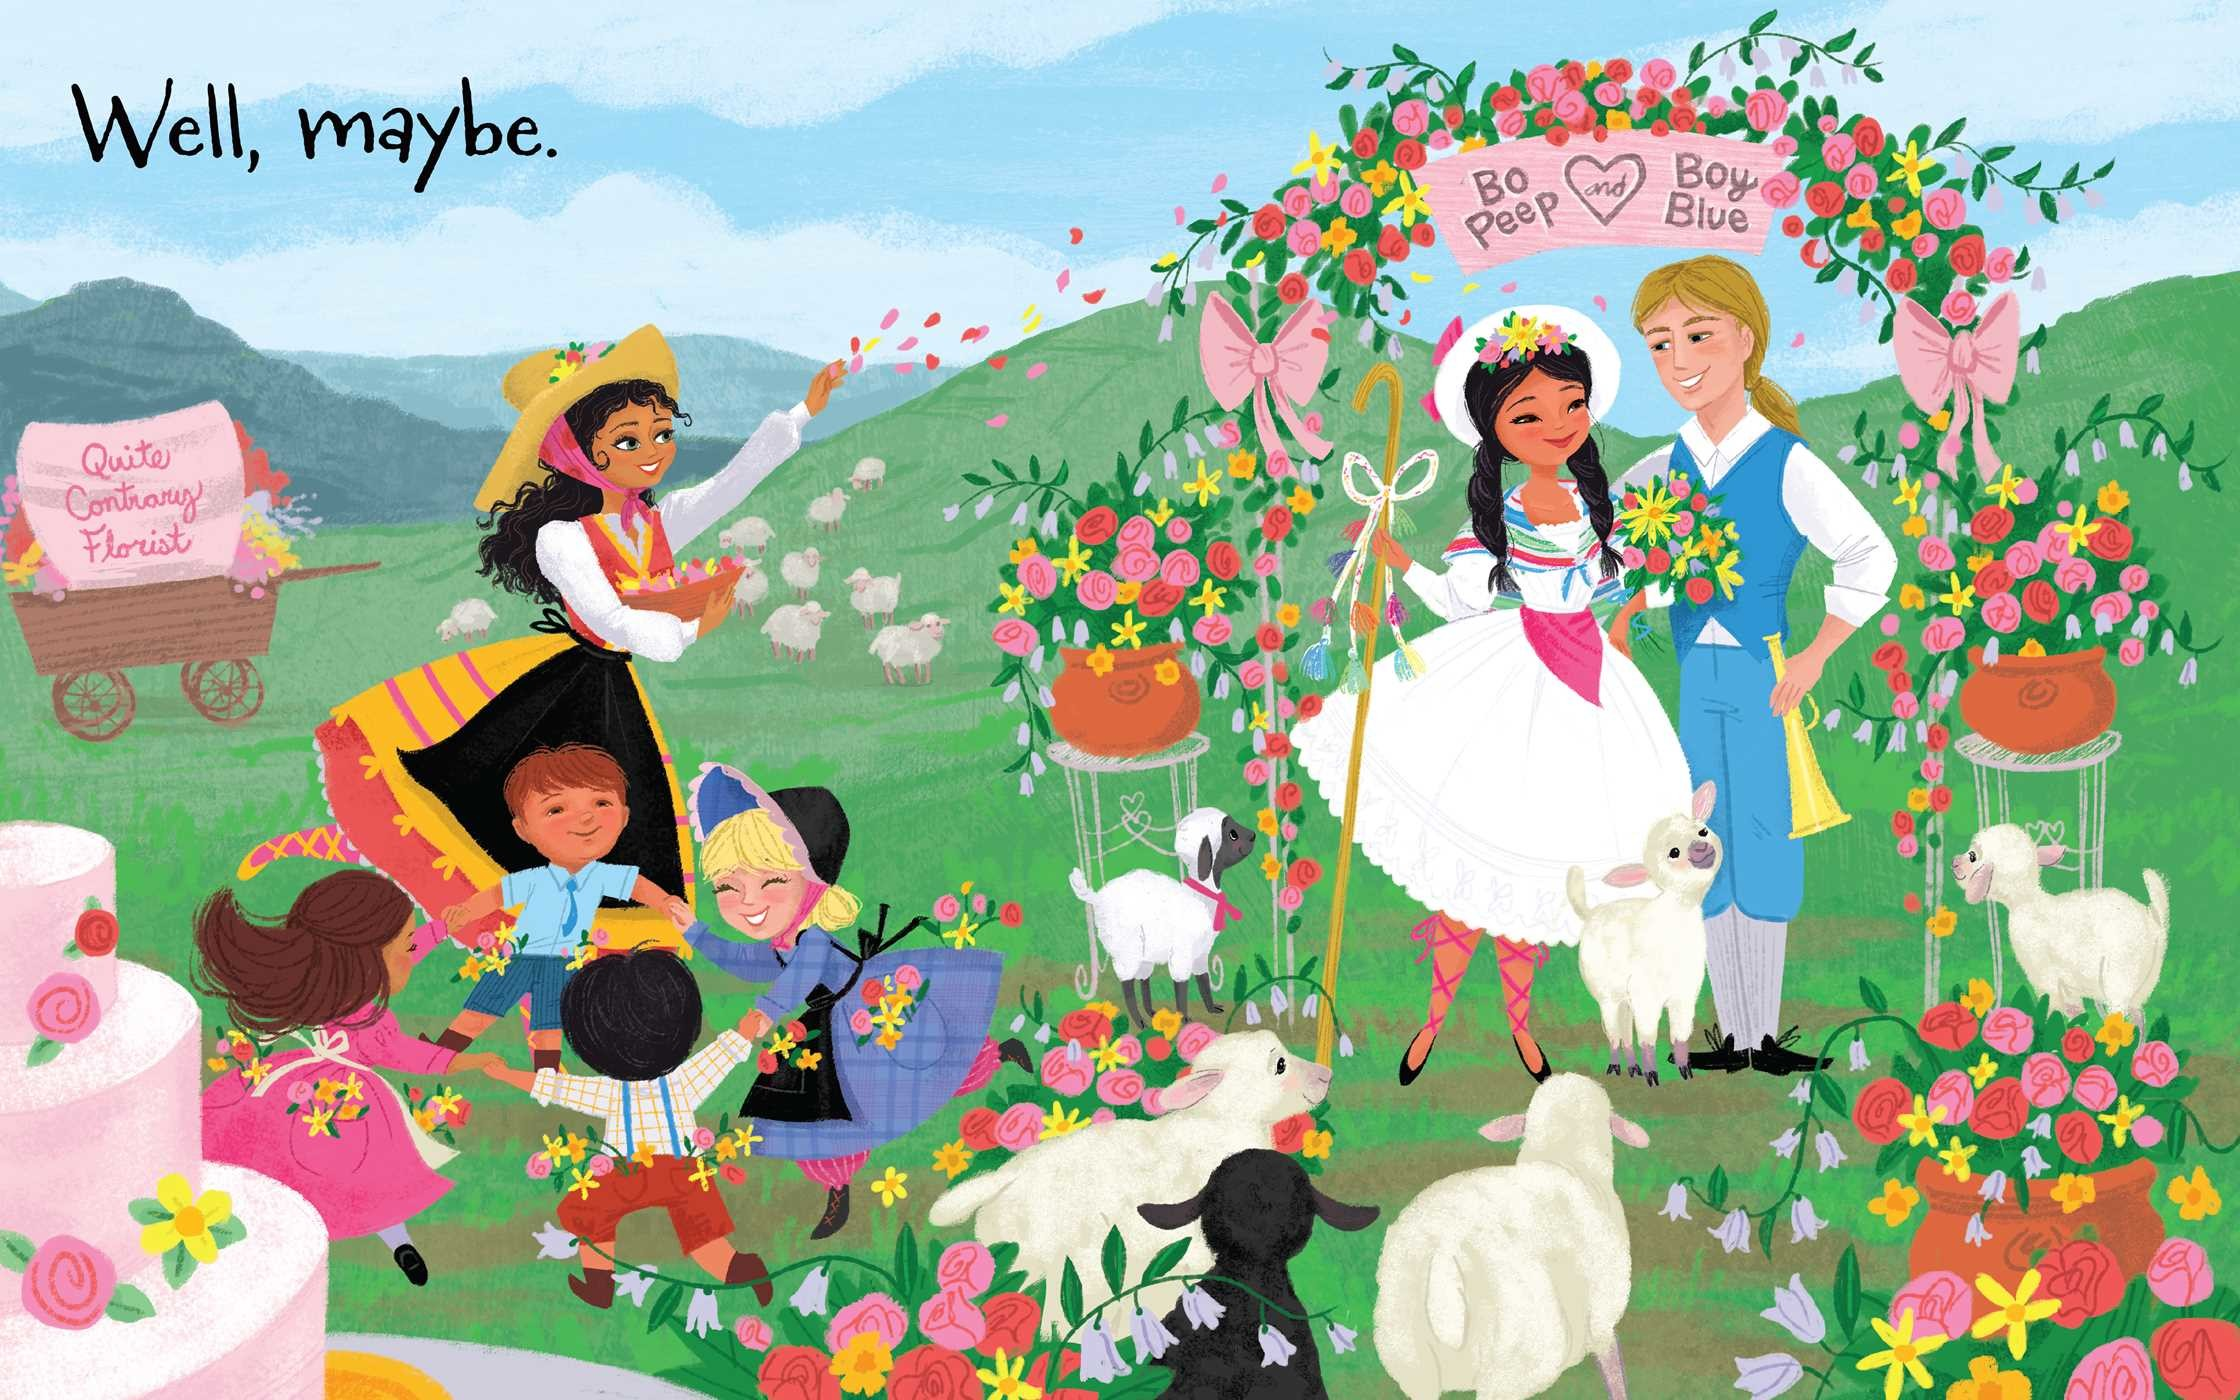 Maybe mother goose book by esm raji codell elisa chavarri maybe mother goose 978148144036304 fandeluxe Gallery